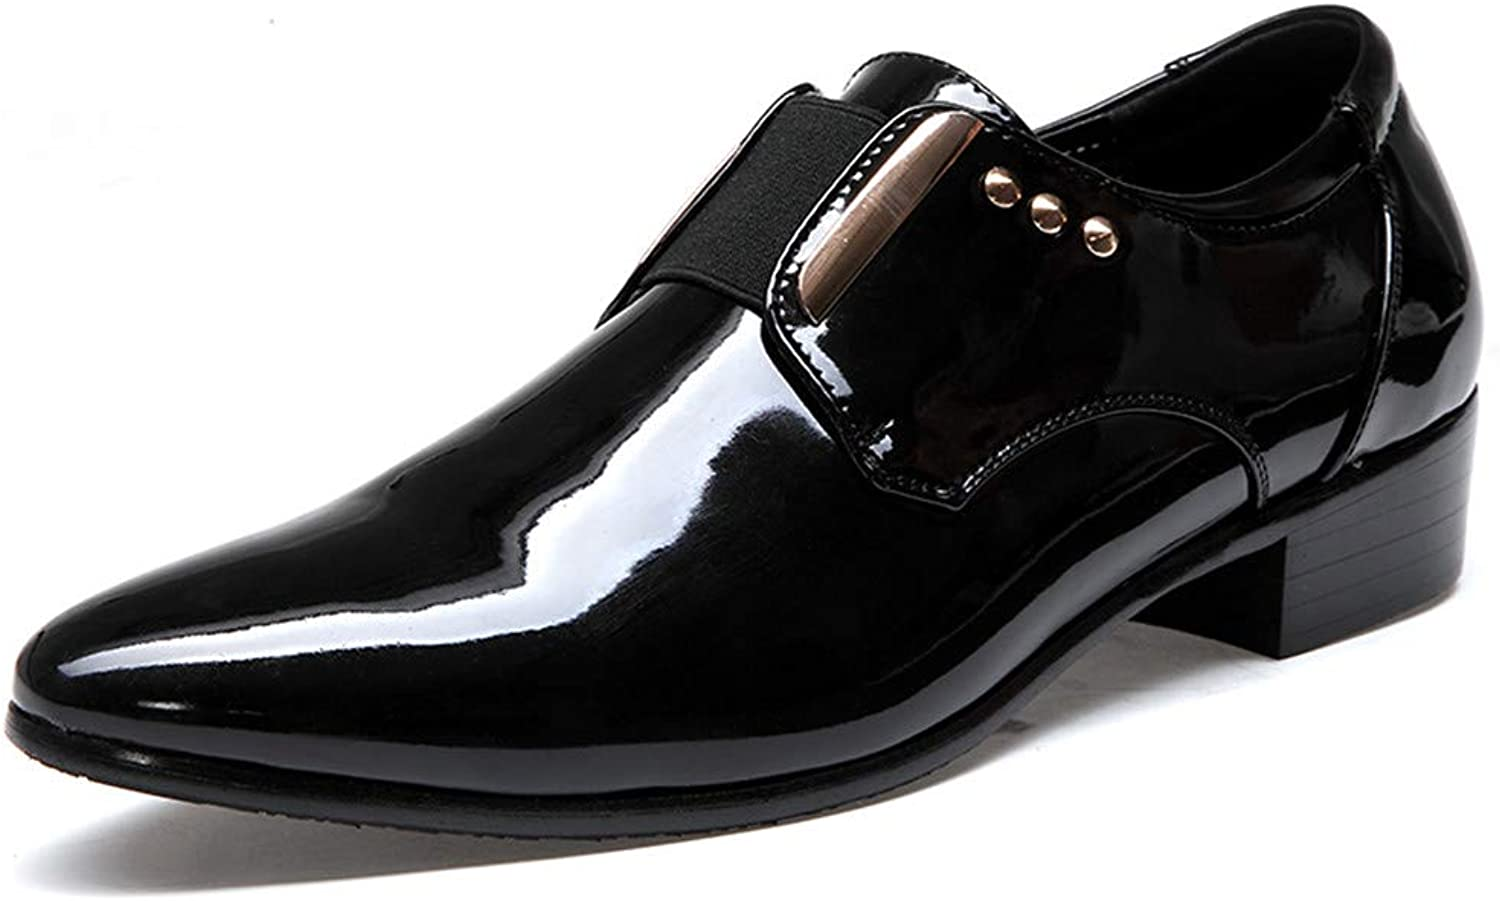 Patent leather Men's Oxford shoes pointed PU leather patent leather metal decorative shoes fashion casual low heel shoes Formal wear Dress shoes (color   Black, Size   9.5 UK)